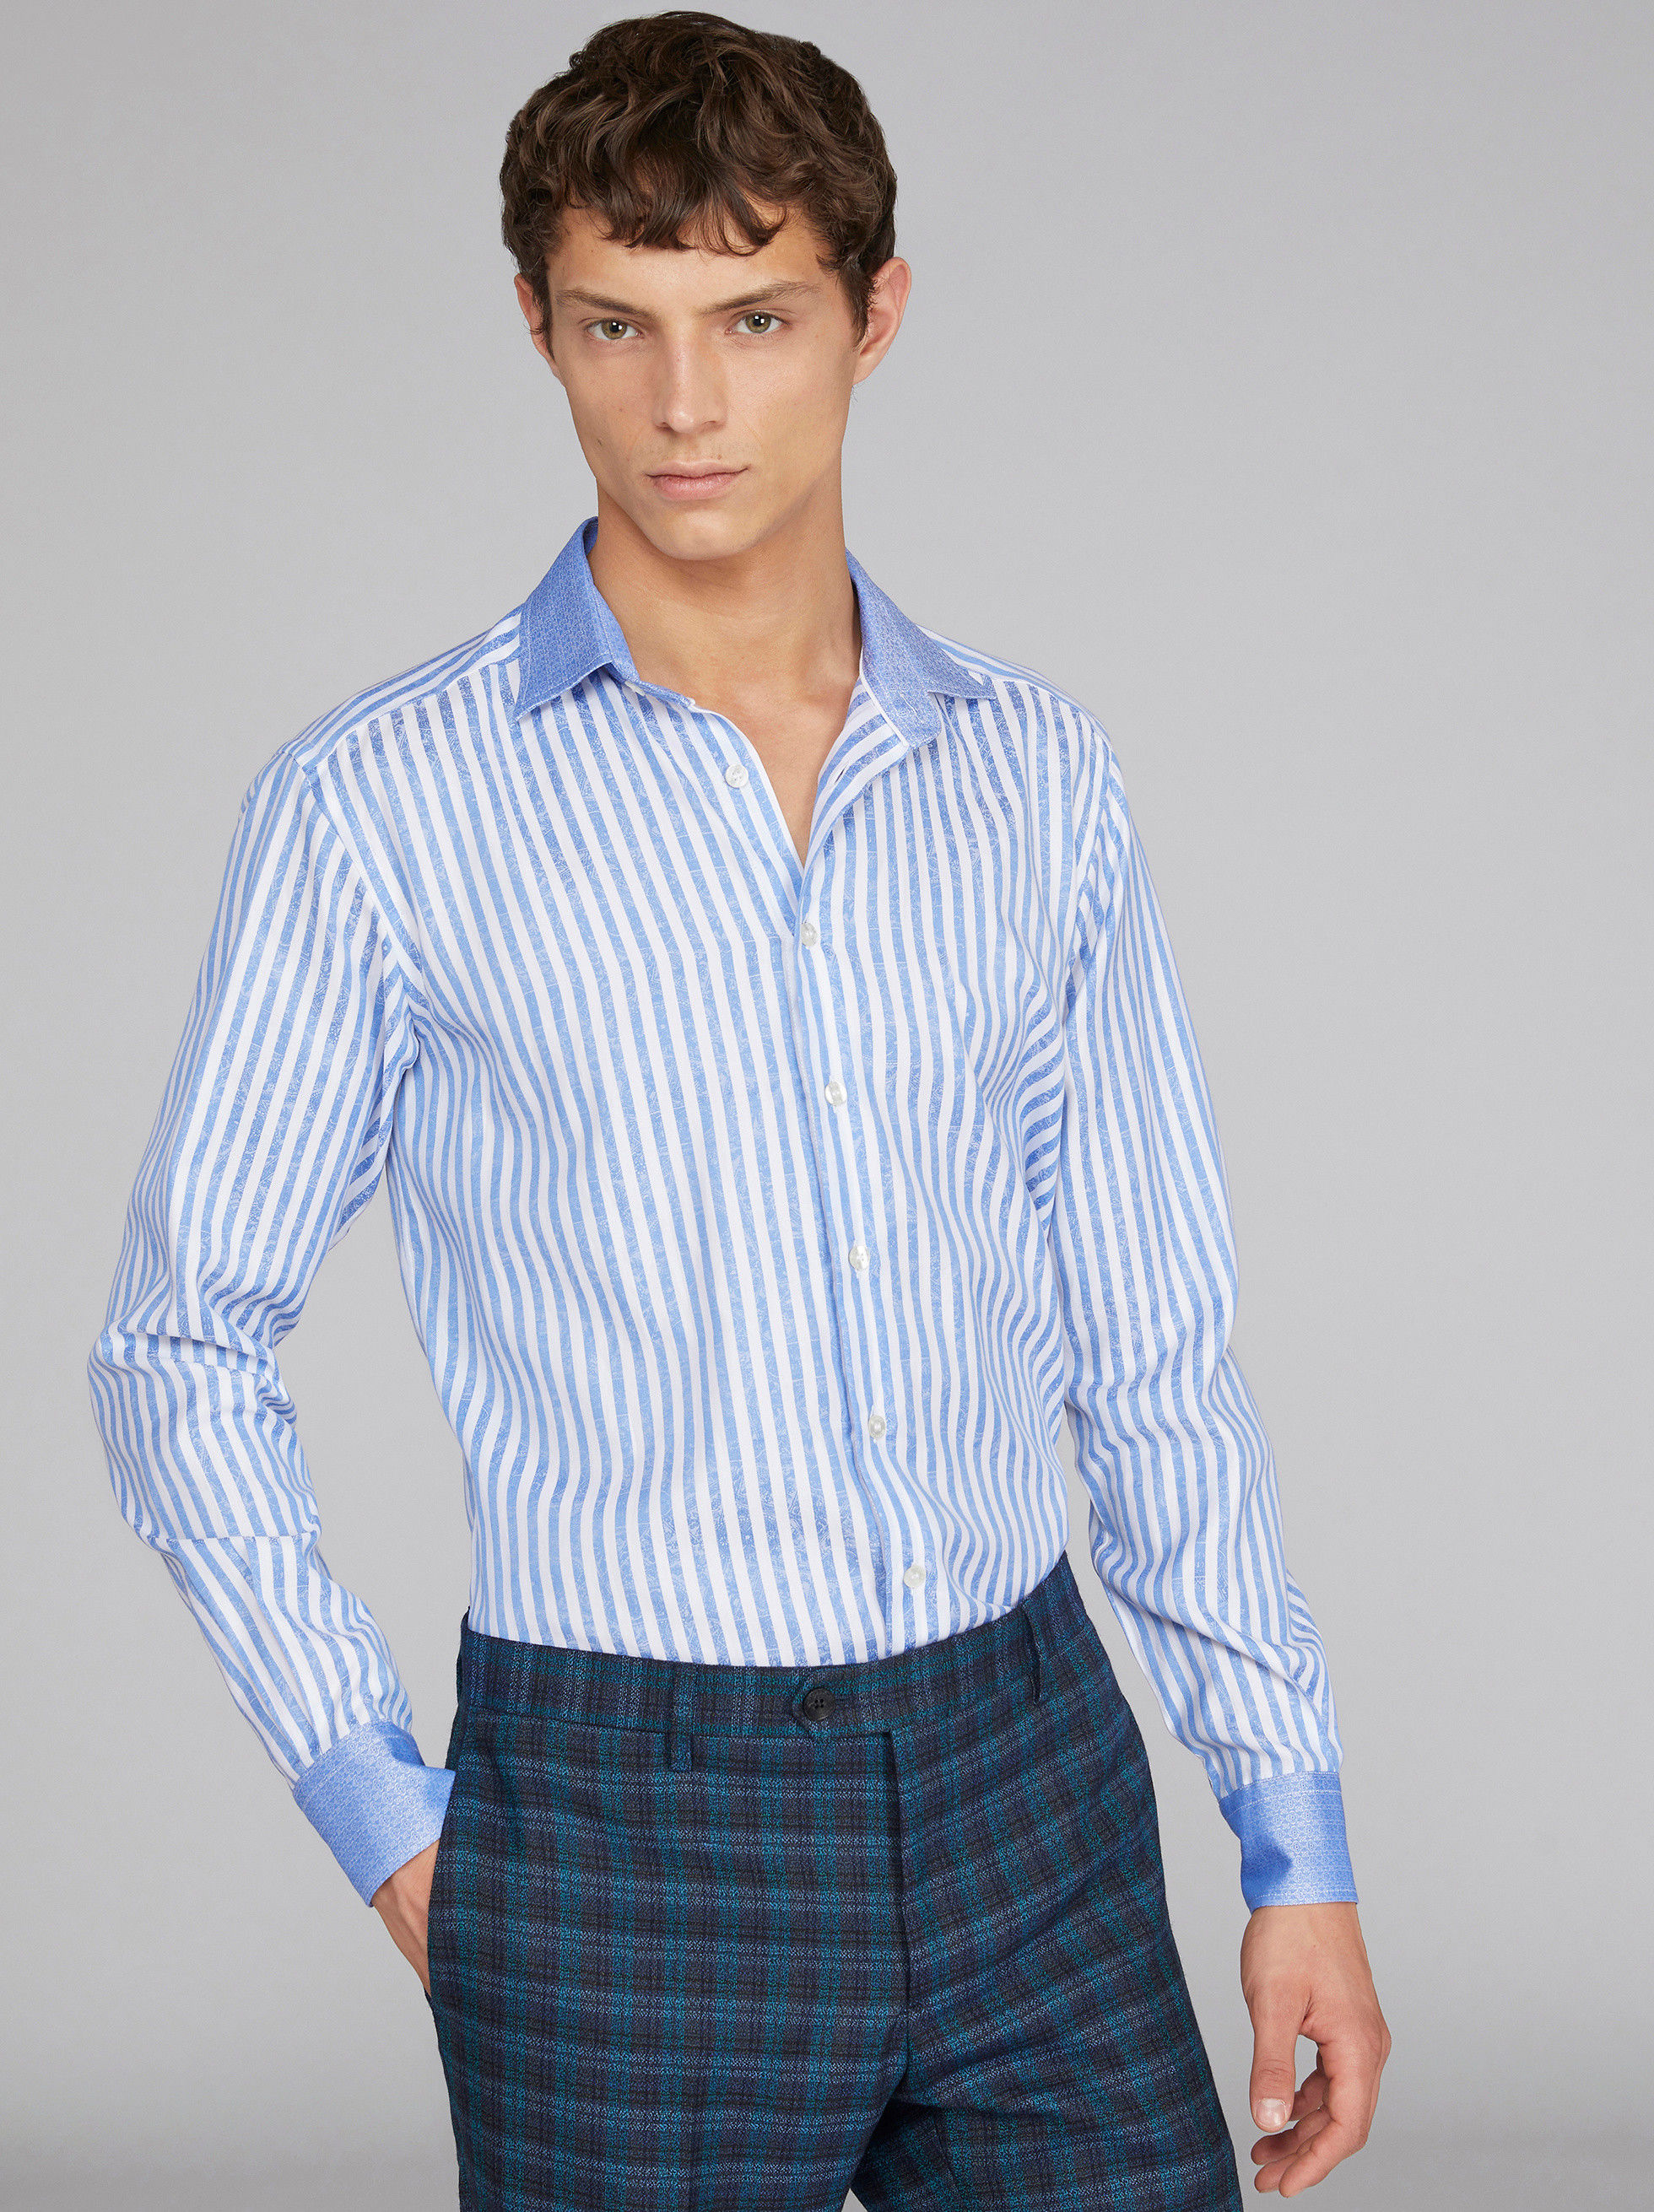 DUAL FABRIC JACQUARD STRIPED SHIRT